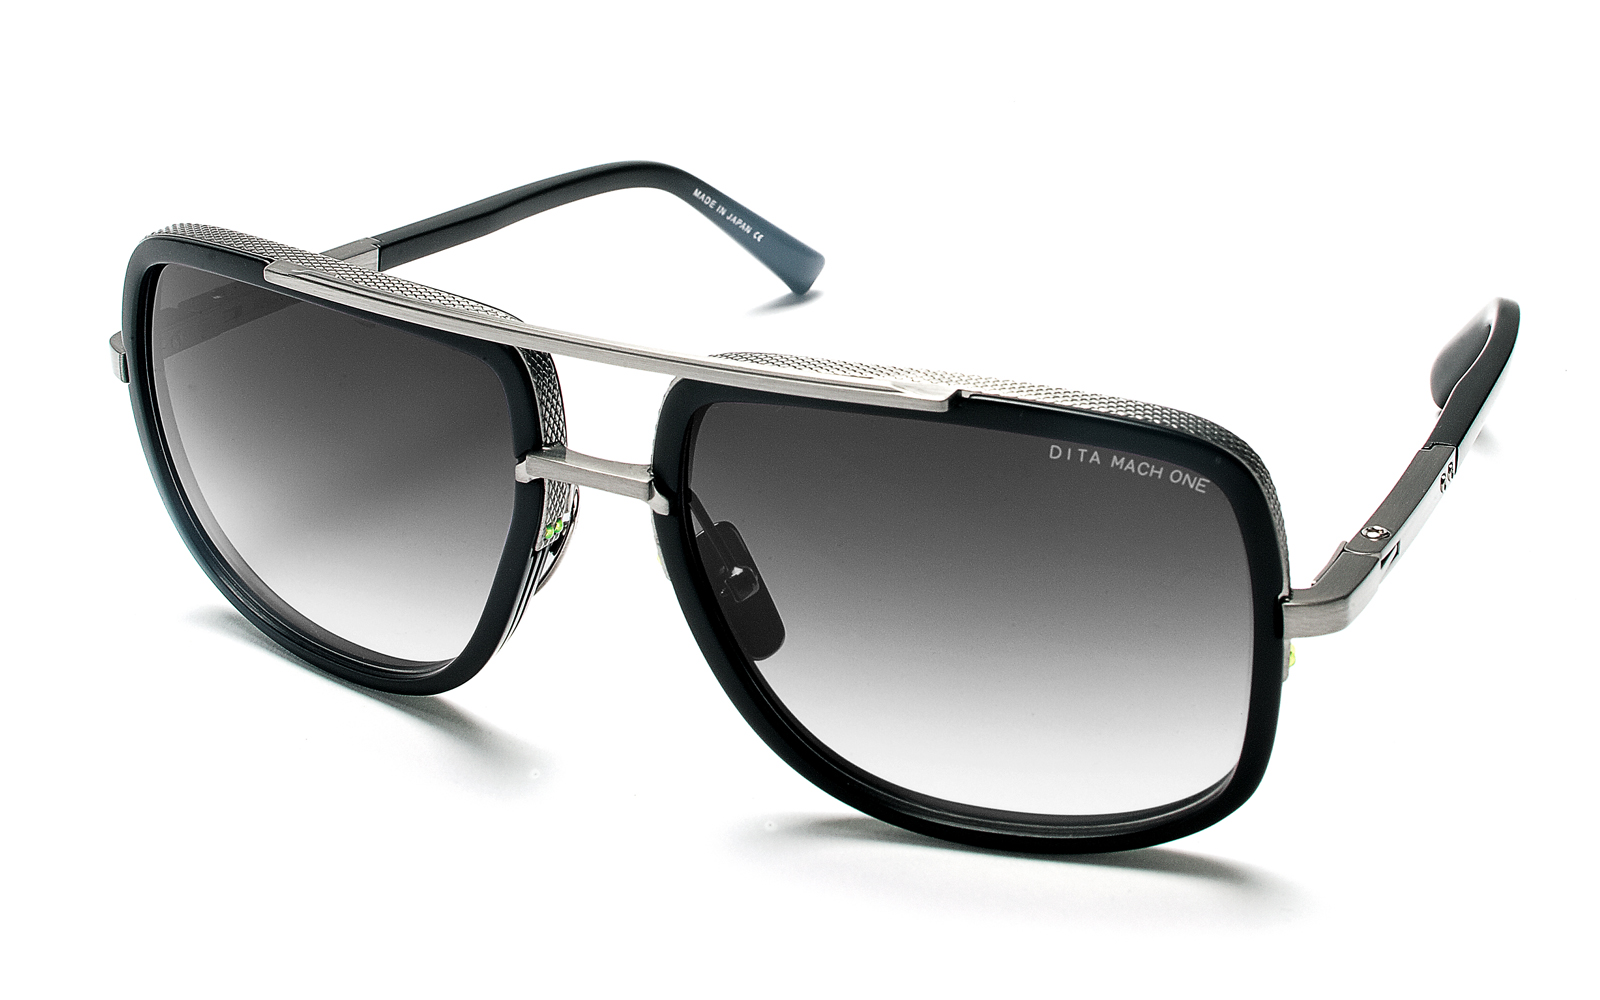 5a087330a1f  DITA  Mach-One DRX-2030E sunglasses - Shop from the brilliant selection of   sunglasses made by  SUNGLASSCURATOR.com